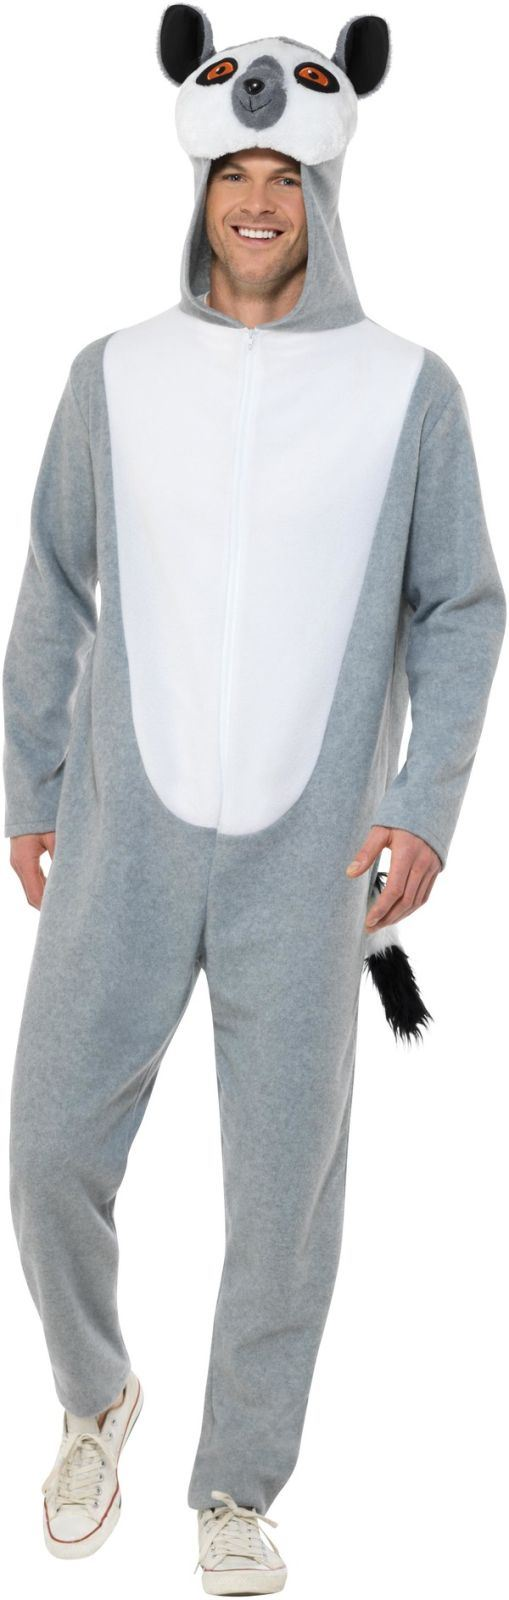 Lemur Adult Costume